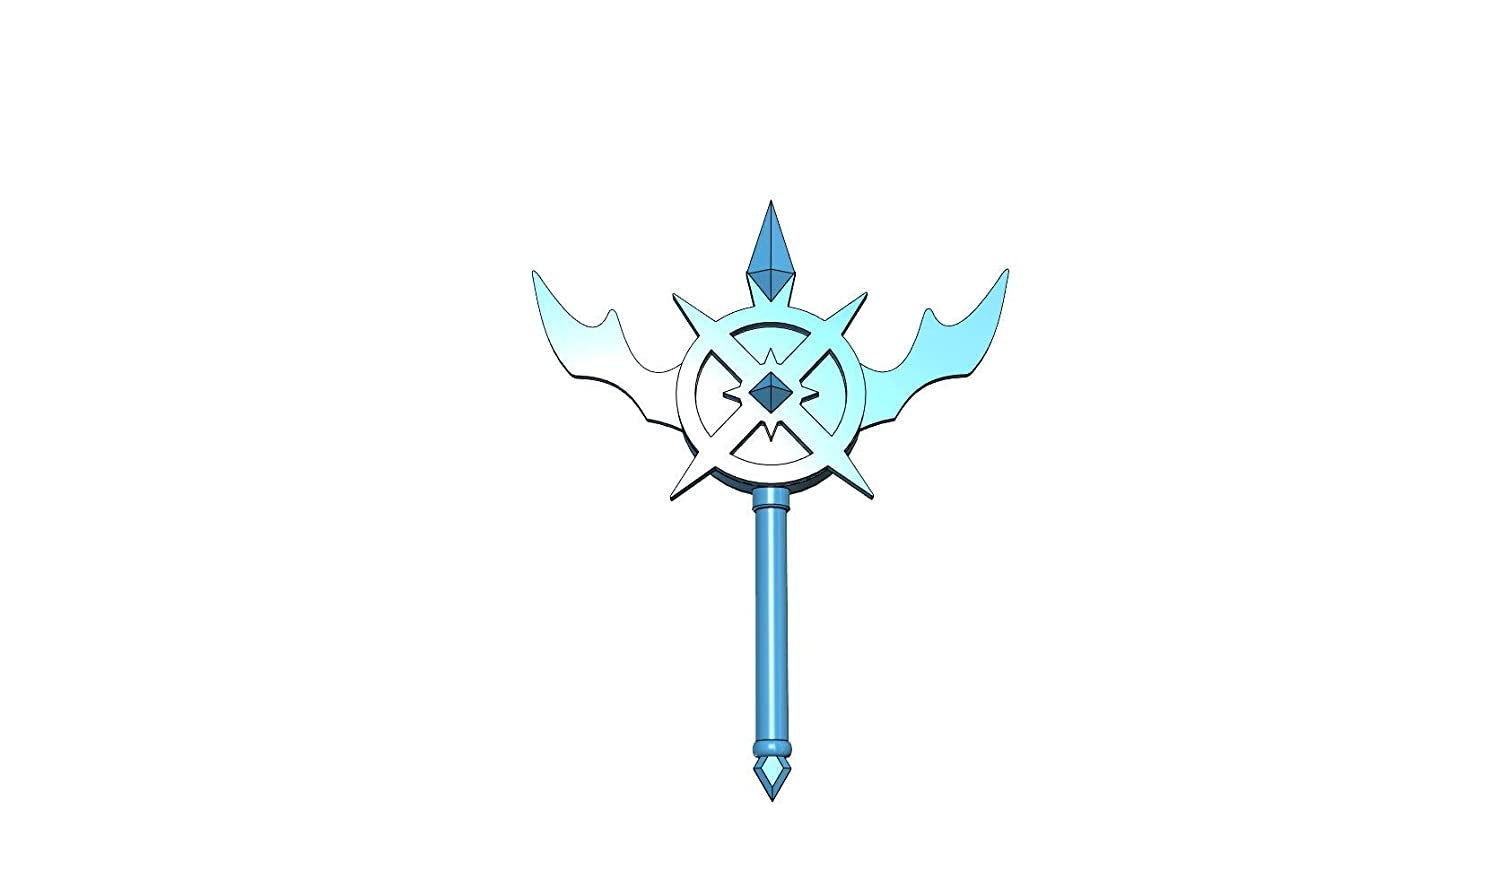 A Marco Styled Wand Kit - Inspired by Star vs The Forces of Evil, Marco's Wand Marco's Wand